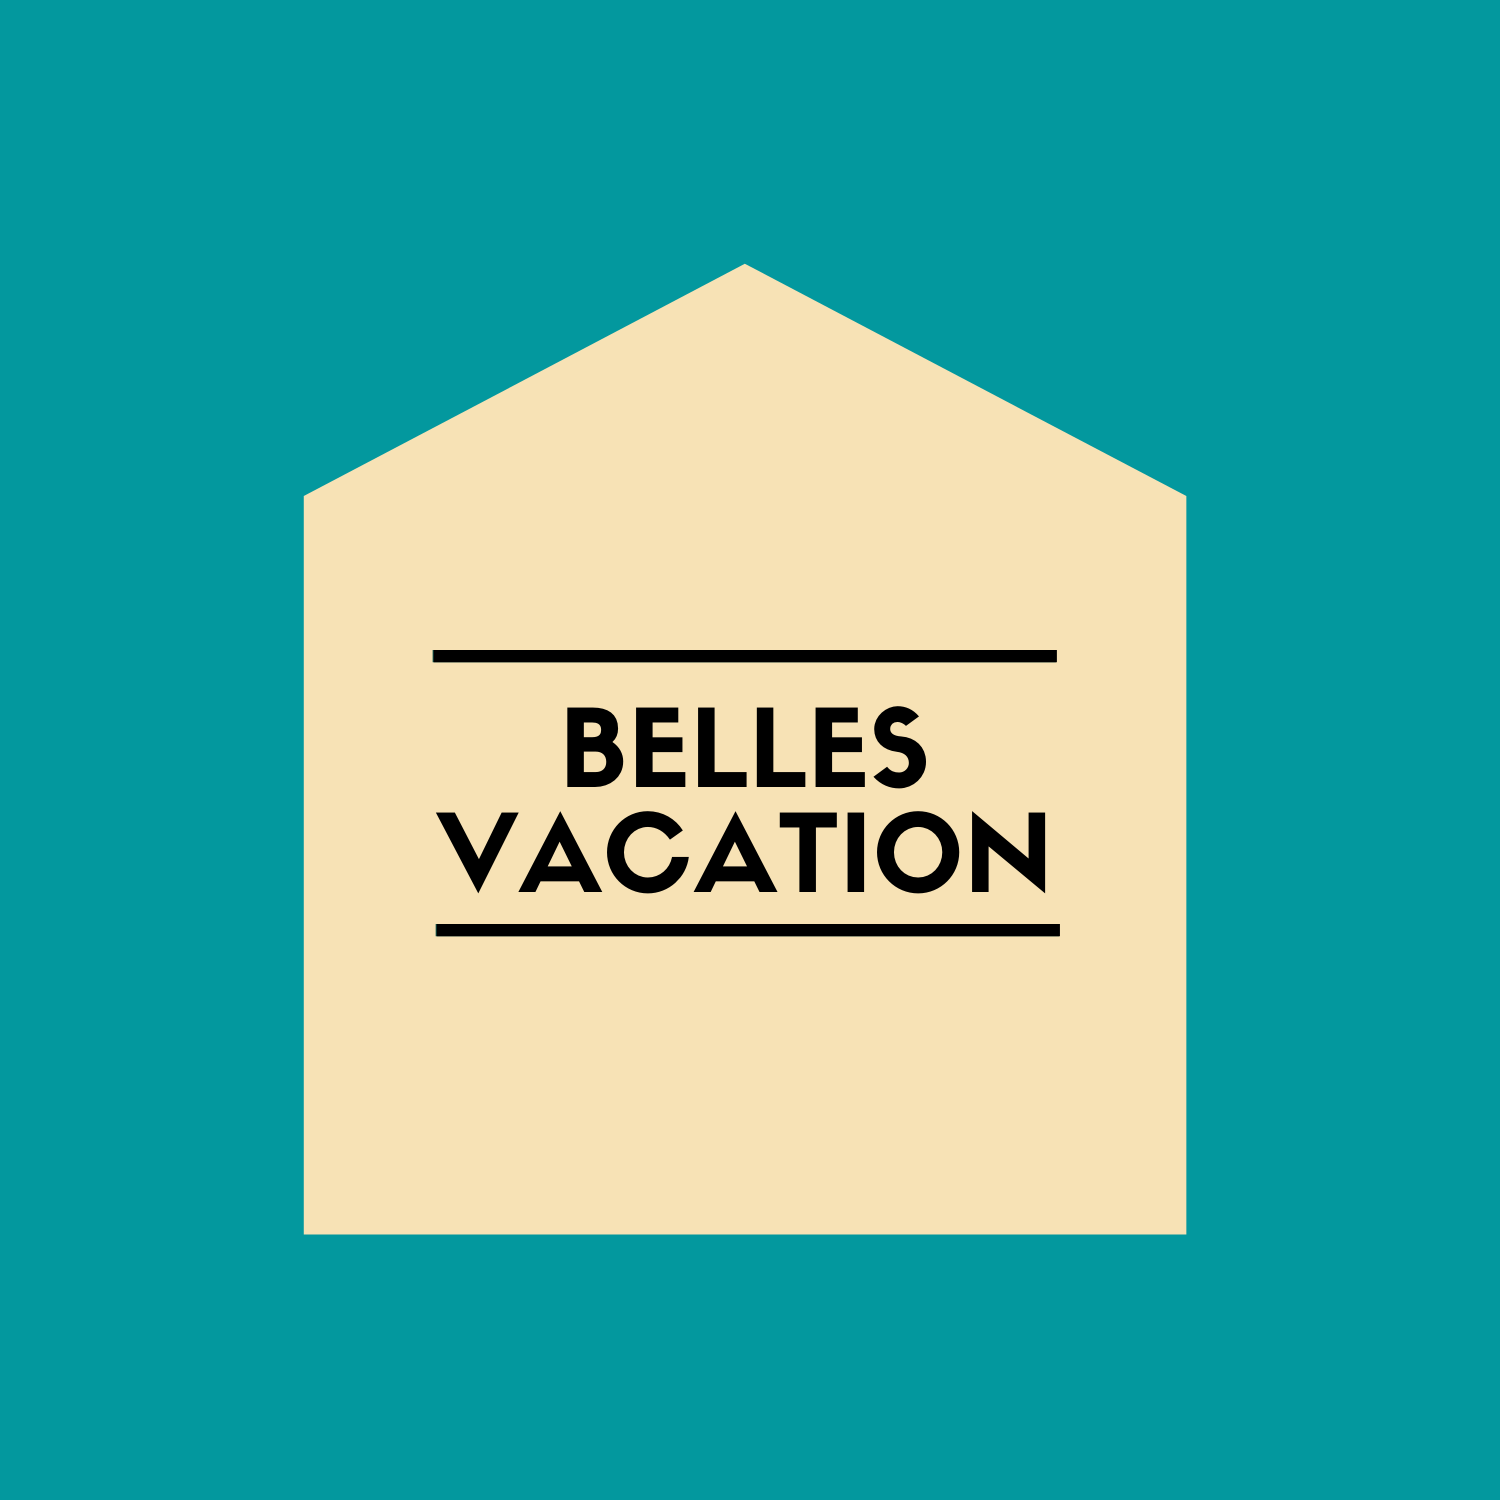 BellesVacation